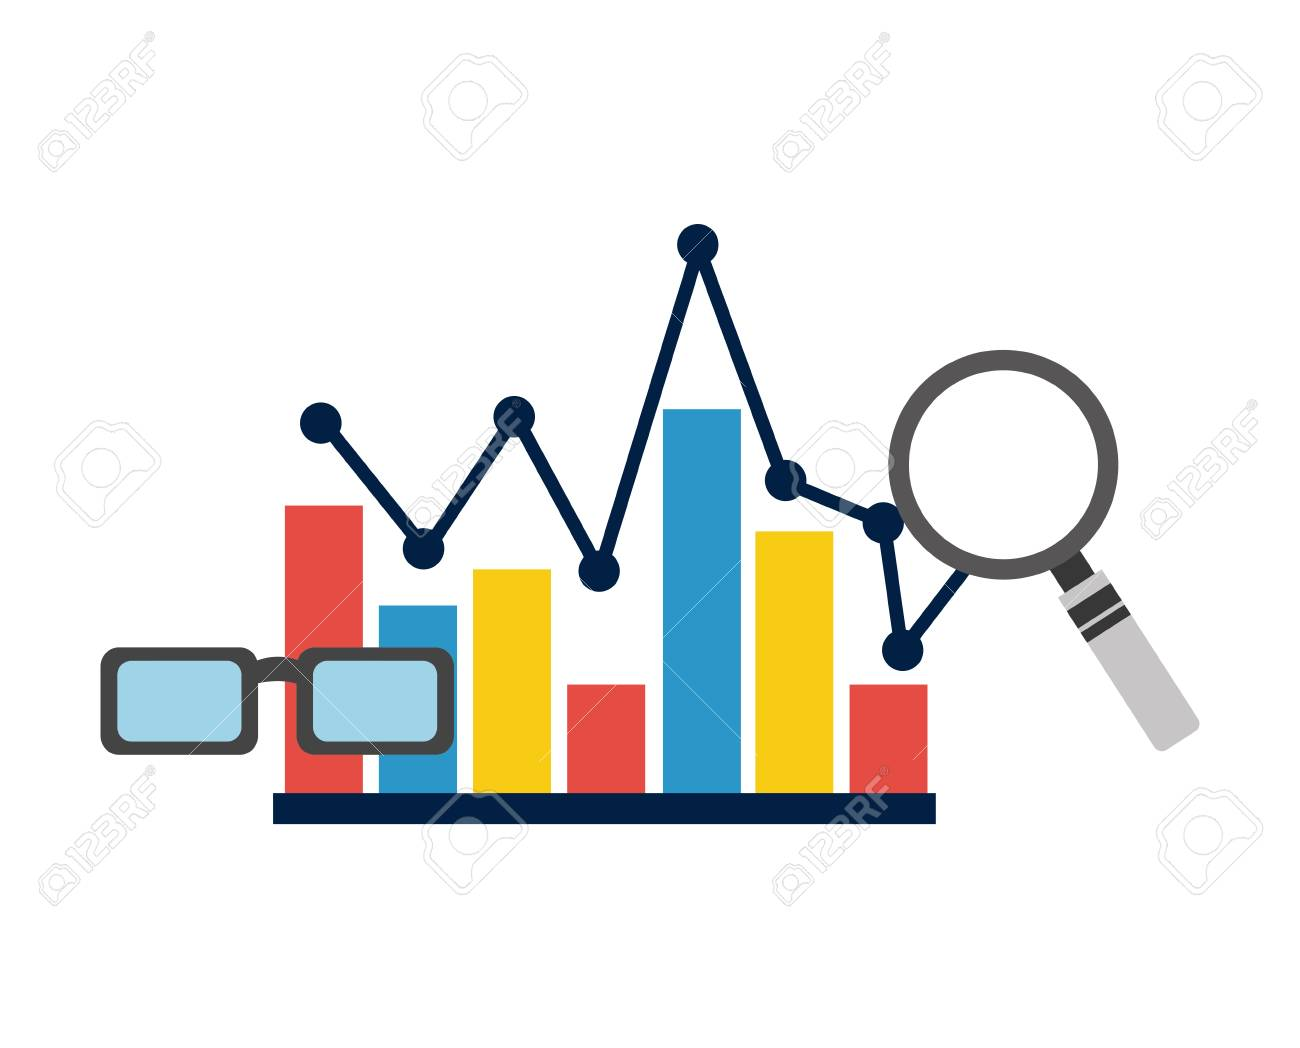 Statistics Bar Graph Pointed Line Analysis Vector Illustration Royalty Free  Cliparts, Vectors, And Stock Illustration. Image 97887018.